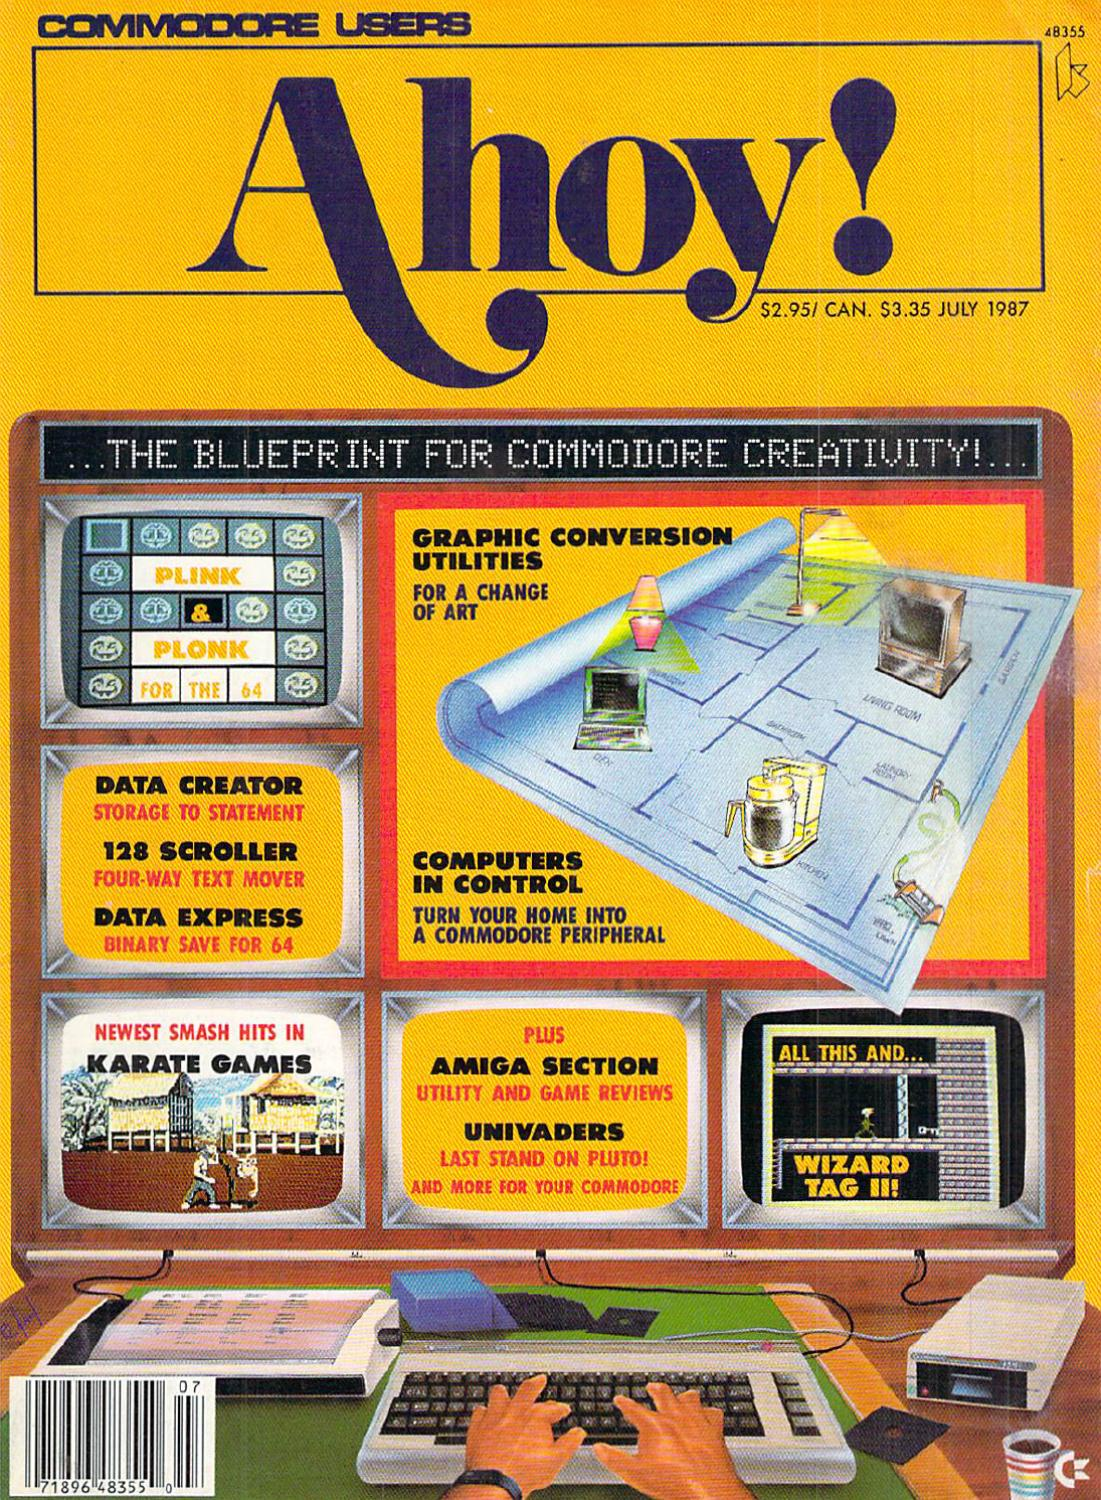 Ahoy Issue 43 1987 Jul By Zetmoon Issuu 67 Comments To Miswiring A 120volt Rv Outlet With 240volts